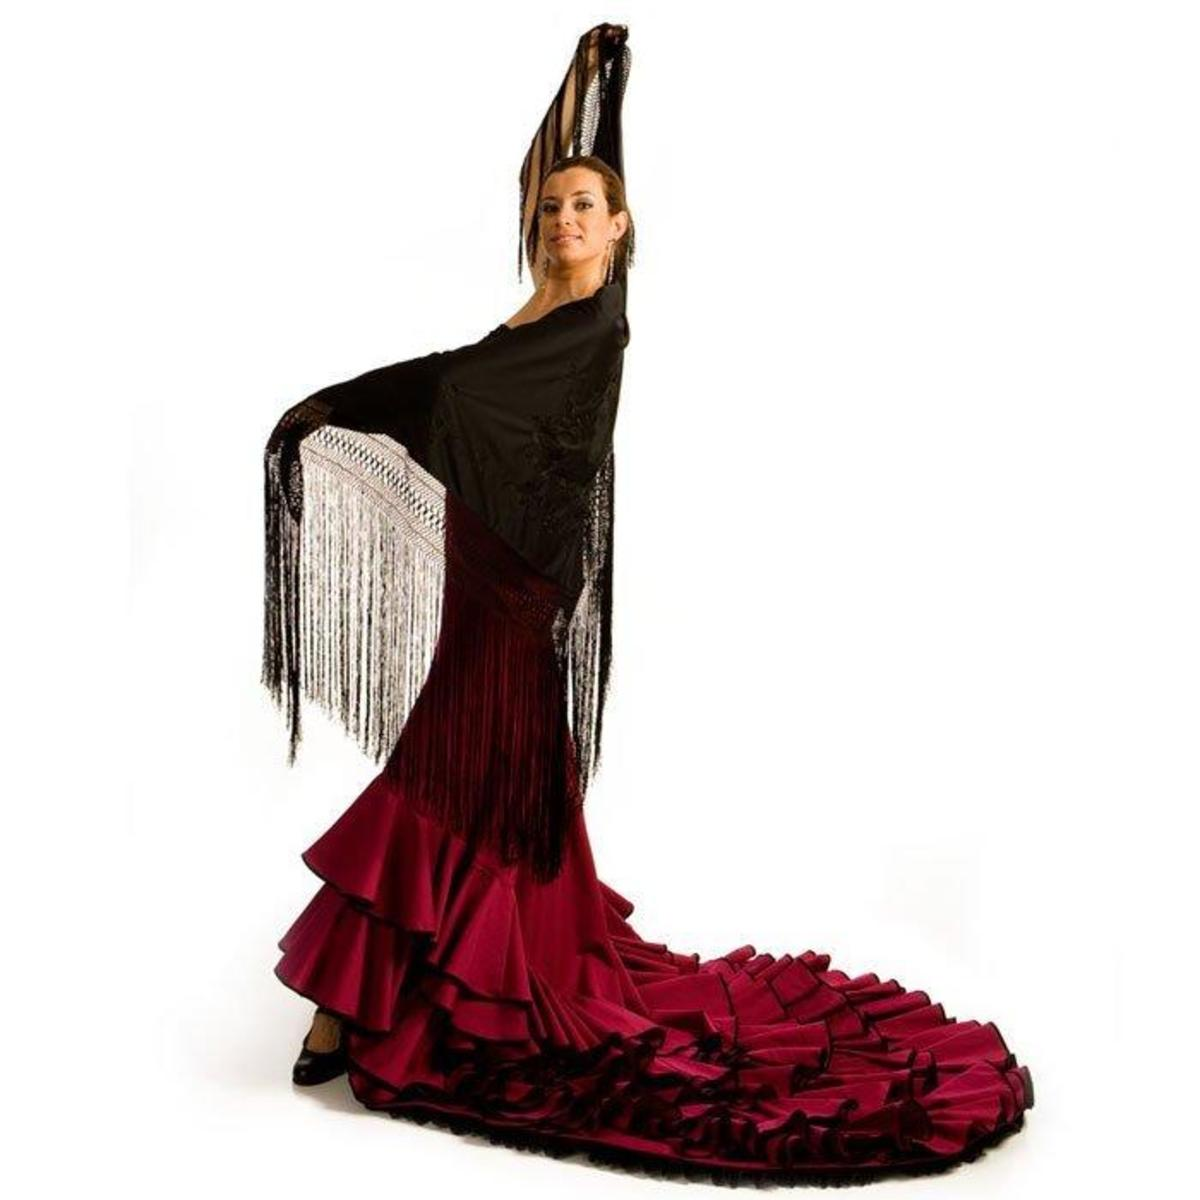 Flamenco: The Bata de Cola